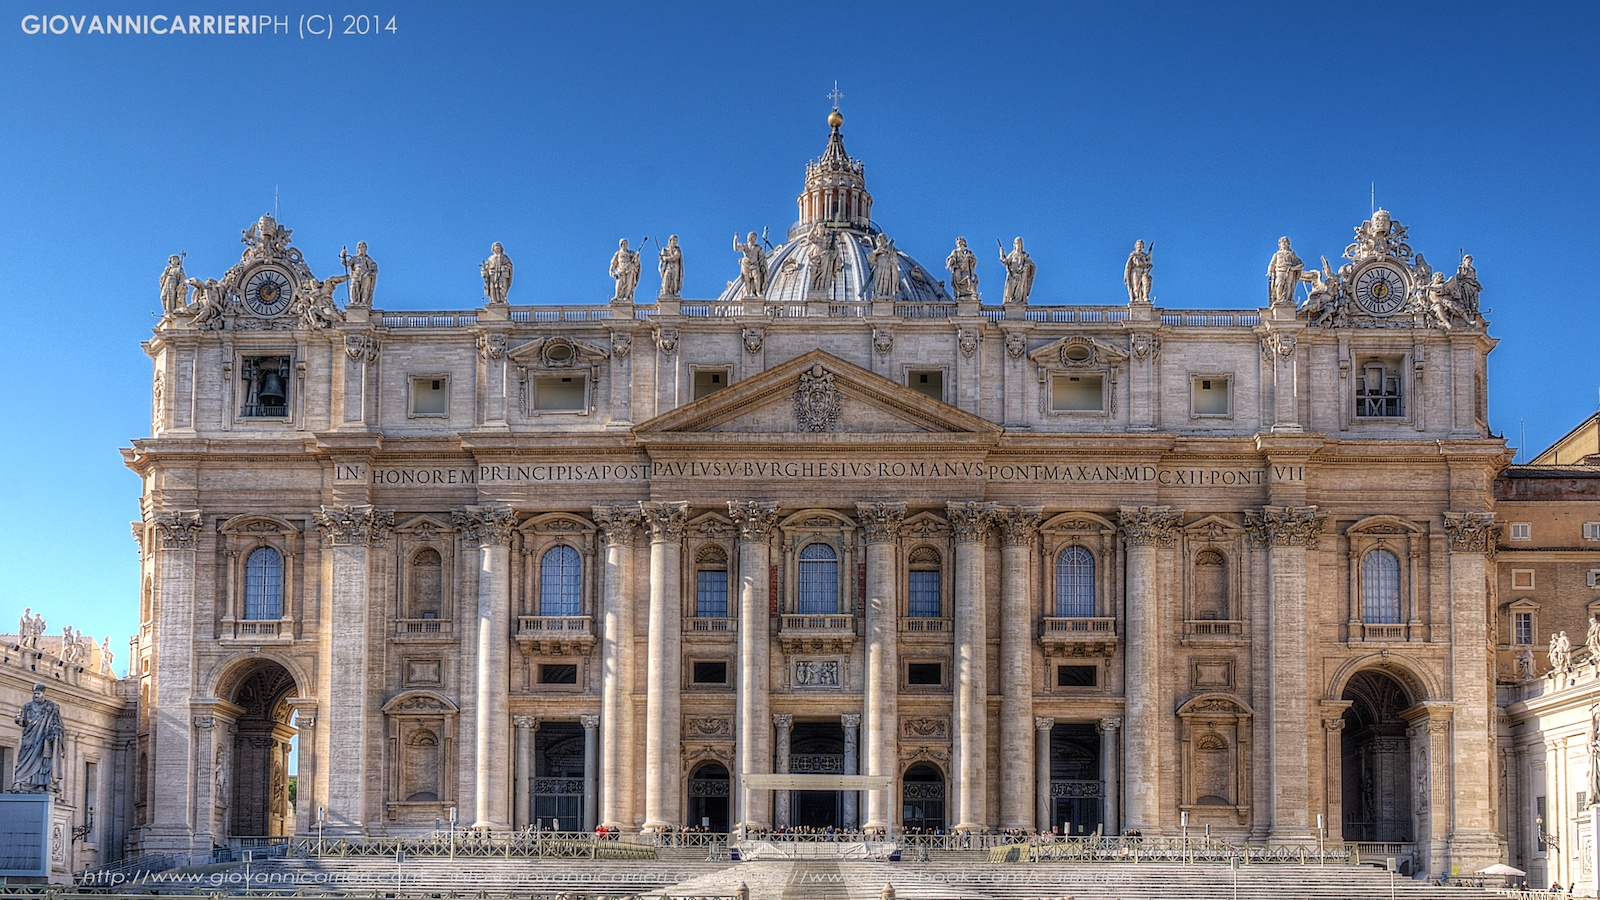 Photographs St. Peter's Basilica